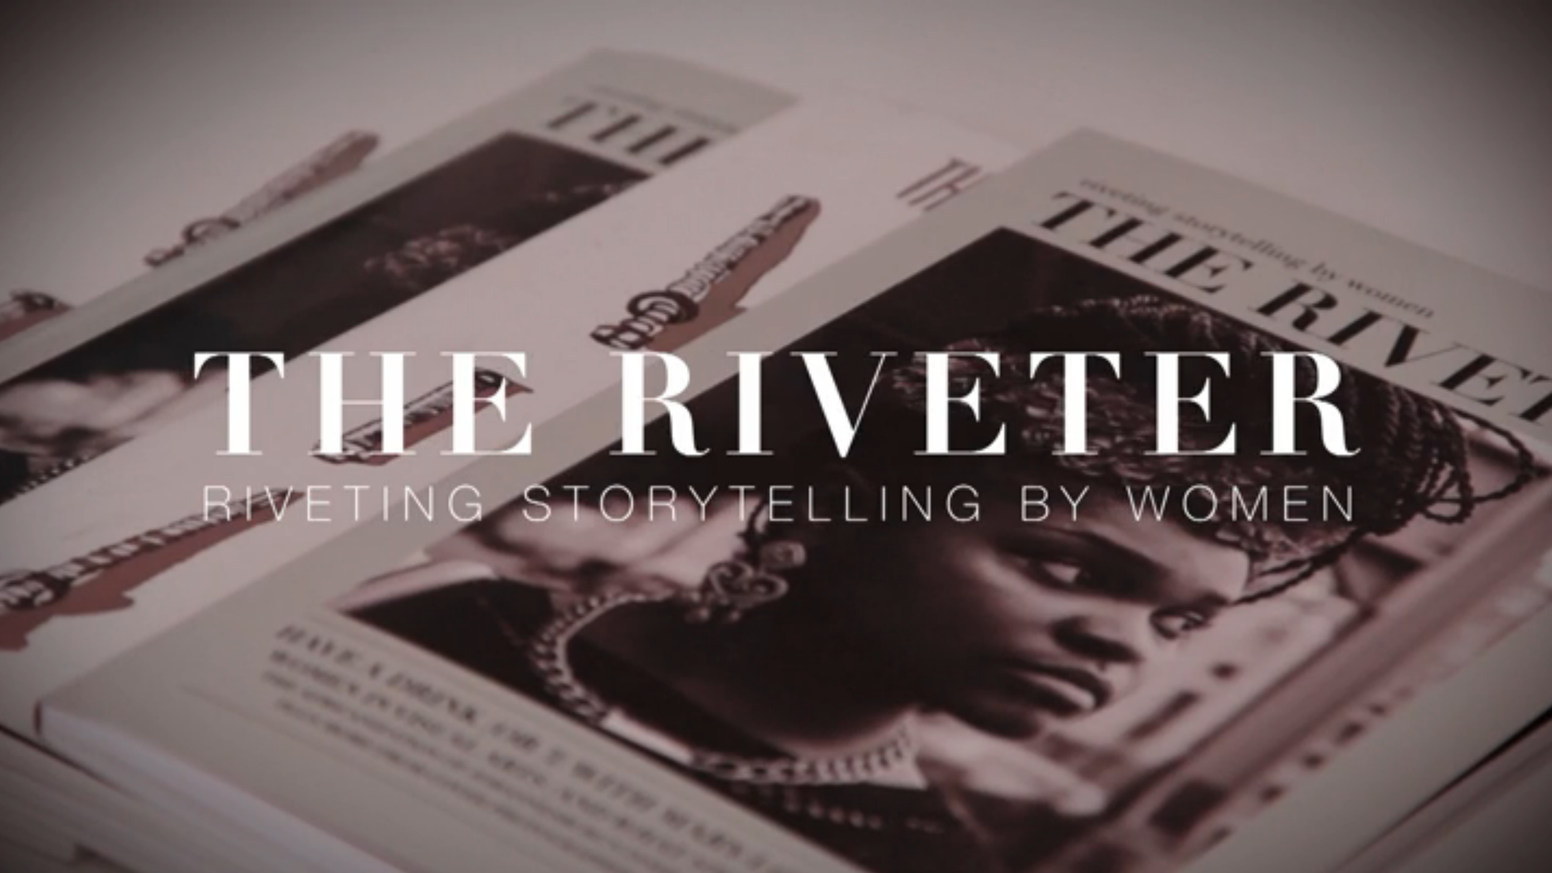 The Riveter is a women's longform lifestyle magazine. Join us in promoting women in journalism and thoughtful content for readers.